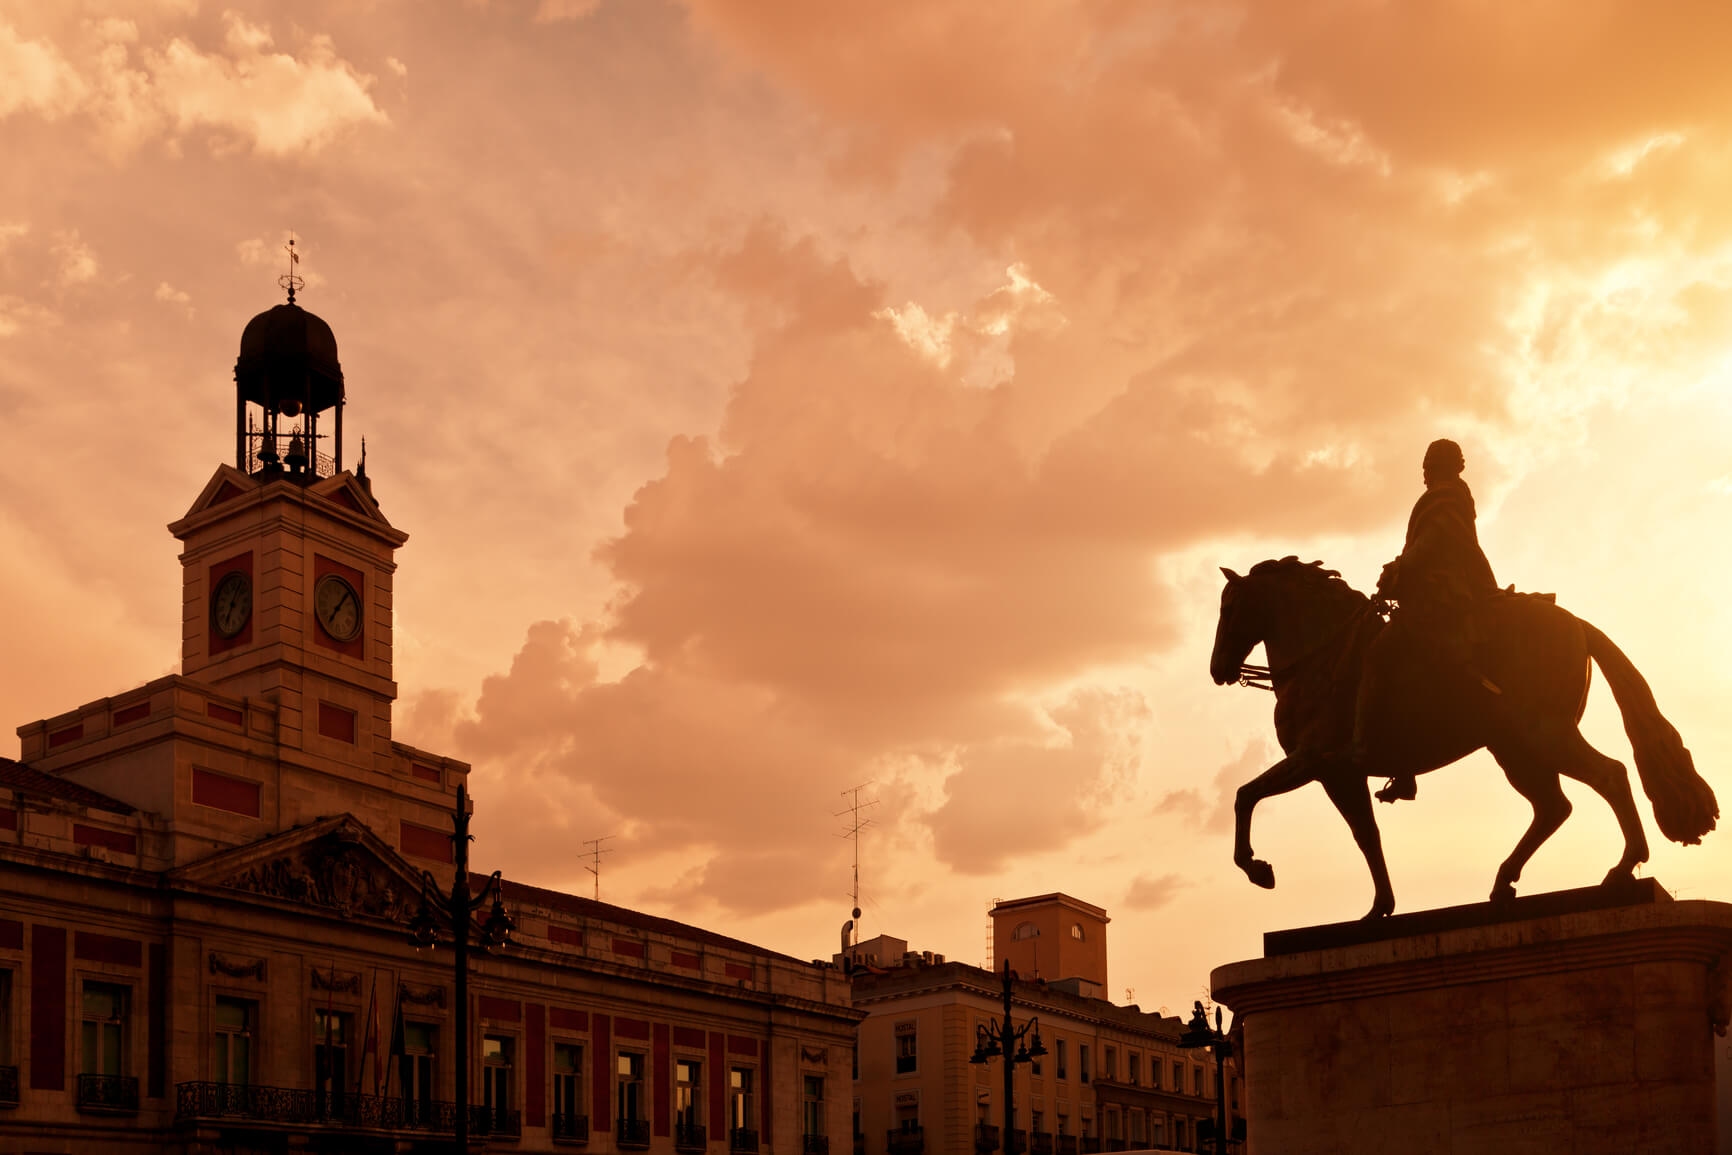 Phoenix, Arizona to Madrid, Spain for only $417 roundtrip